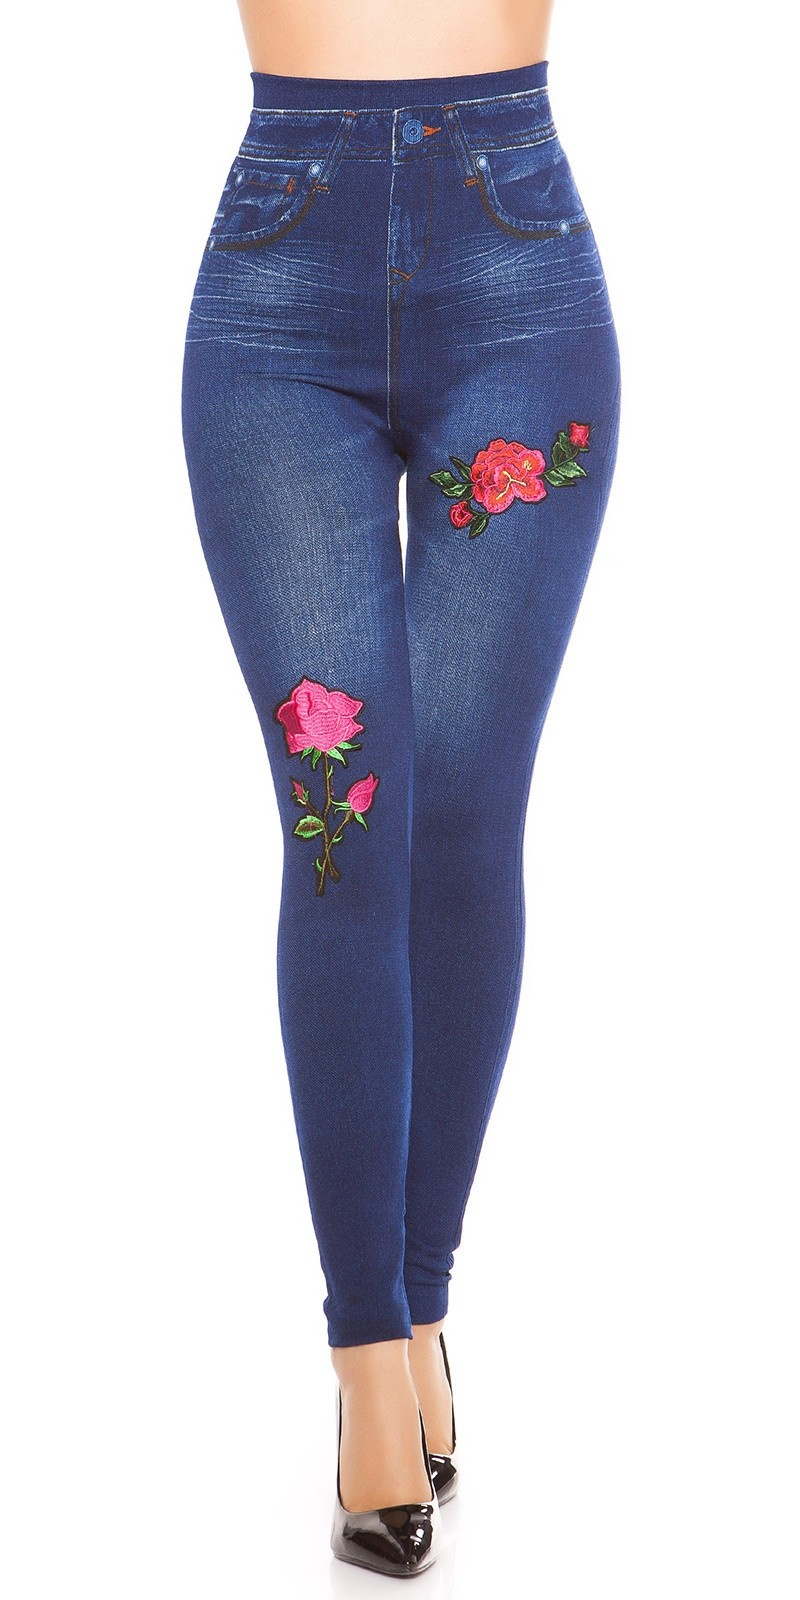 Sexy denim look leggings lined with patch Jeansblue